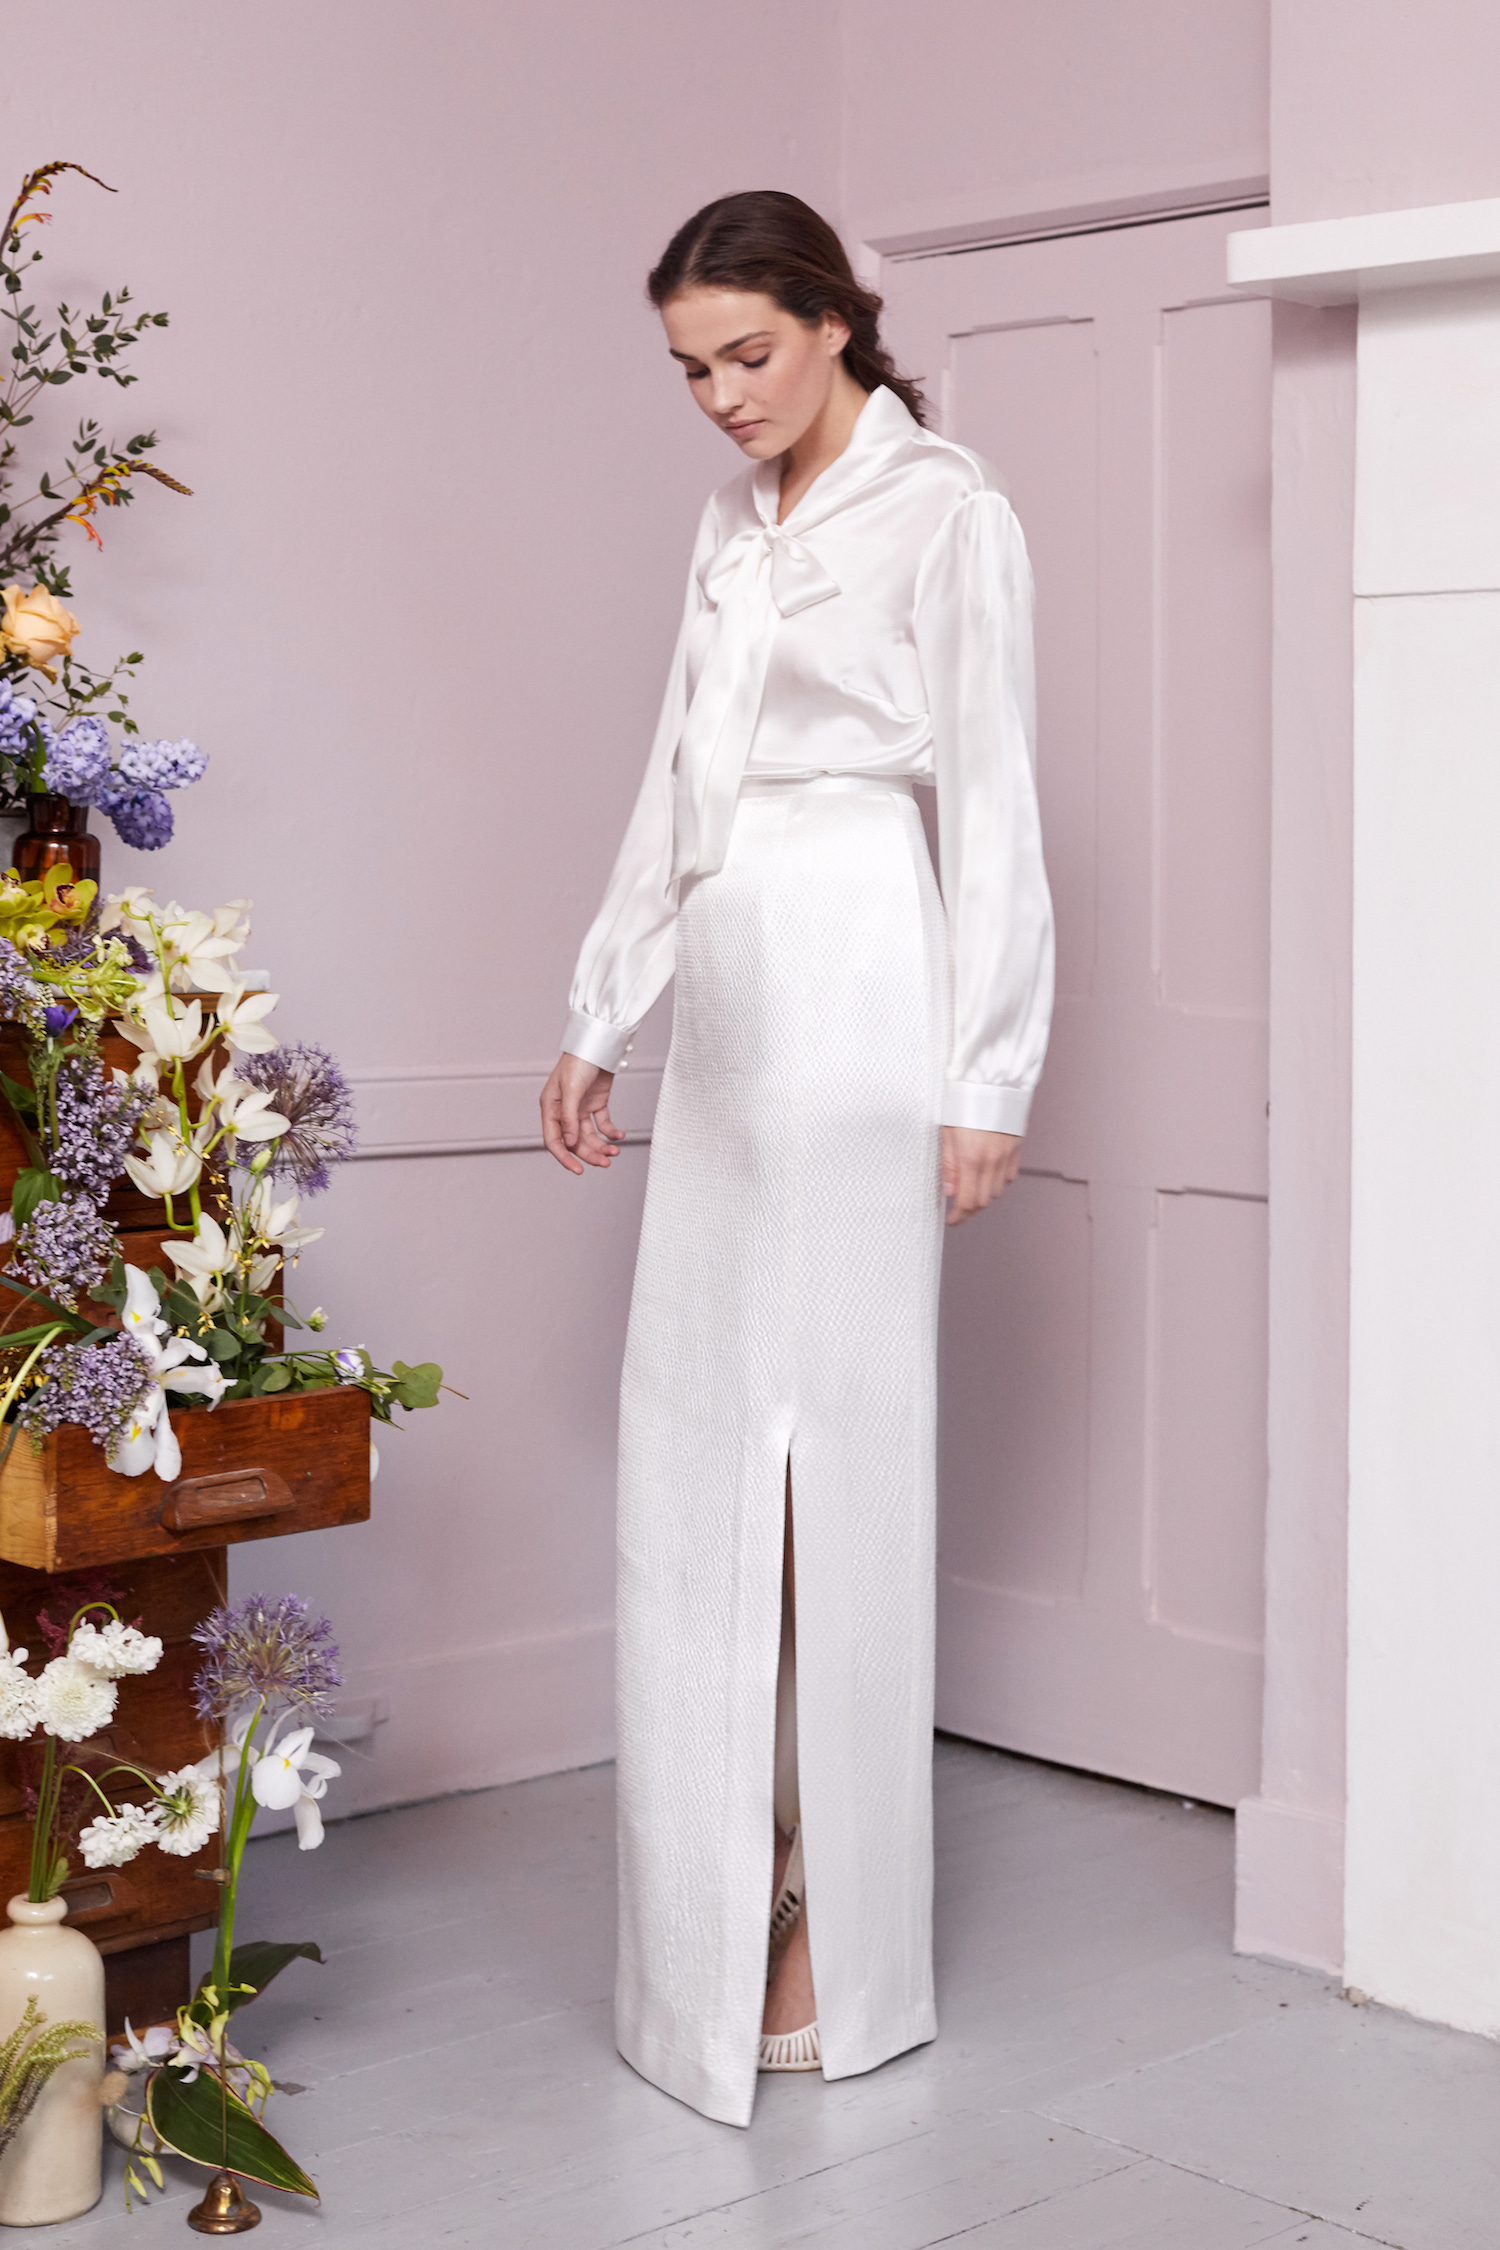 PARRY BLOUSE & ORKO SKIRT | WEDDING DRESS BY HALFPENNY LONDON